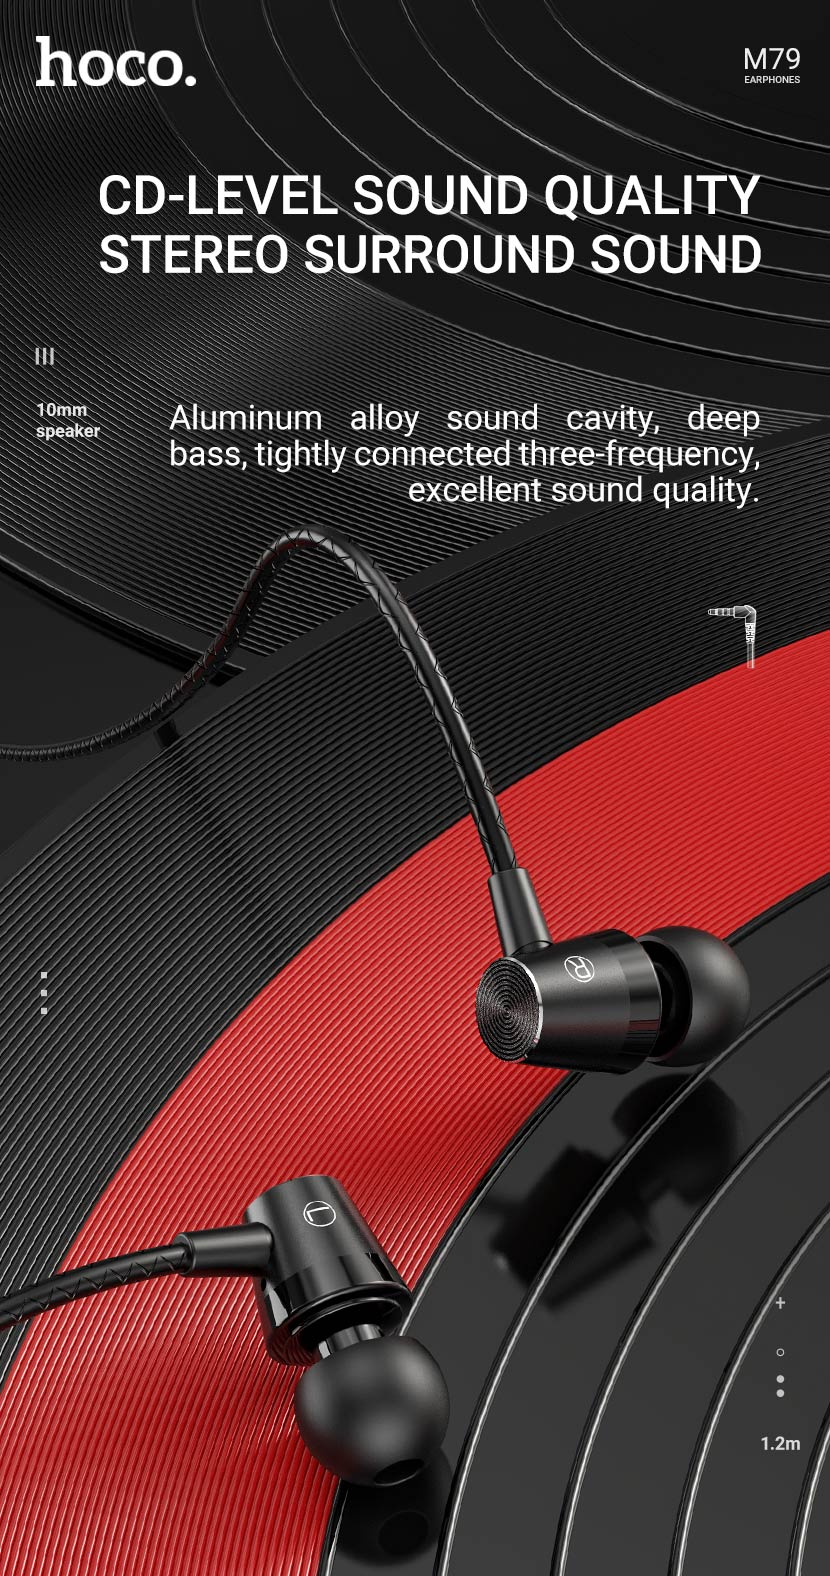 hoco news m79 cresta universal earphones with microphone sound quality en